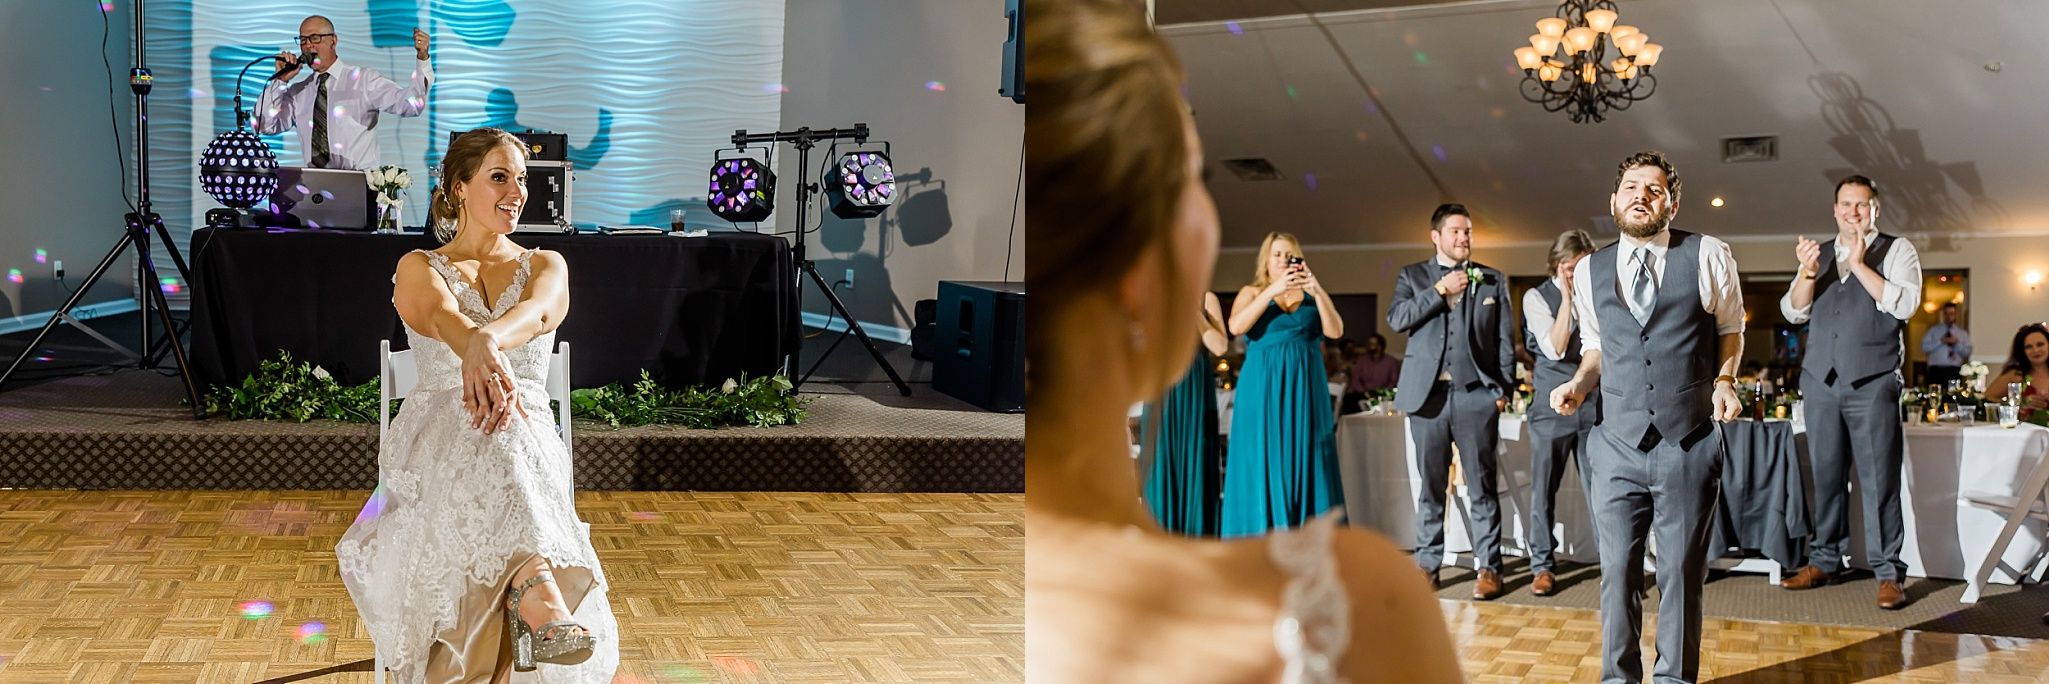 zionsville indiana rural wedding palomino ballroom new adventure productions_0064.jpg